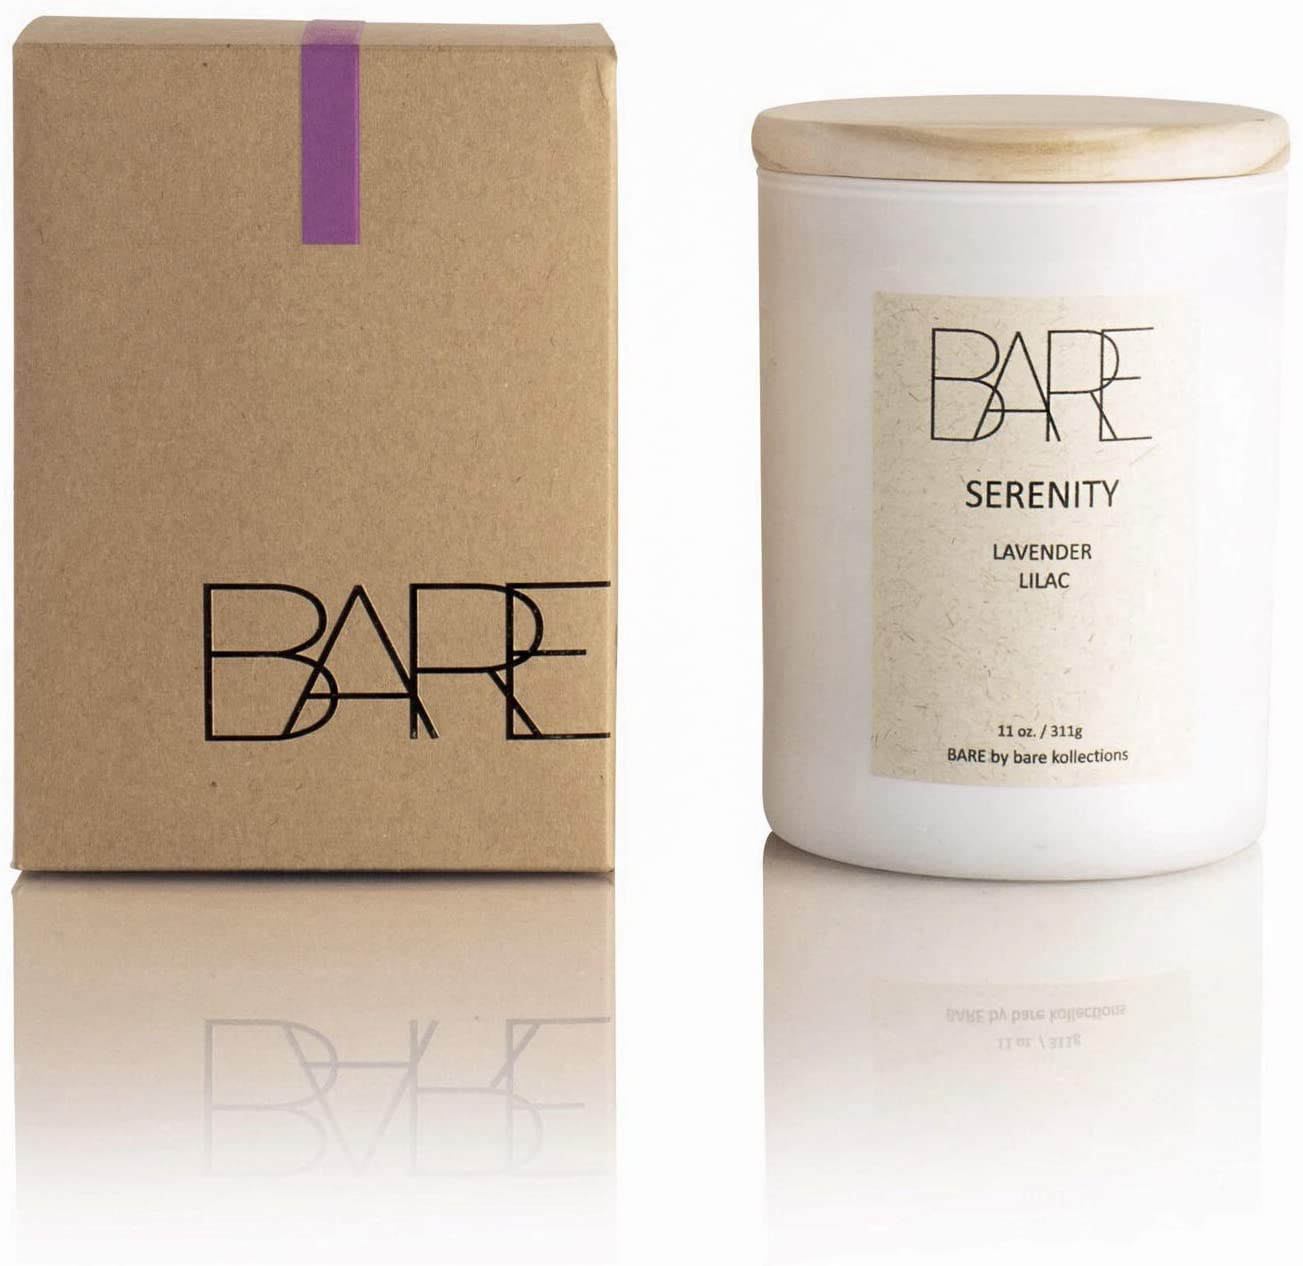 BARE KOLLECTIONS Serenity Lilac Scented Candle, 11 oz. - Large All-Natural Coconut Soy Candle, Stress Relief, Long Burn Time, Made in USA